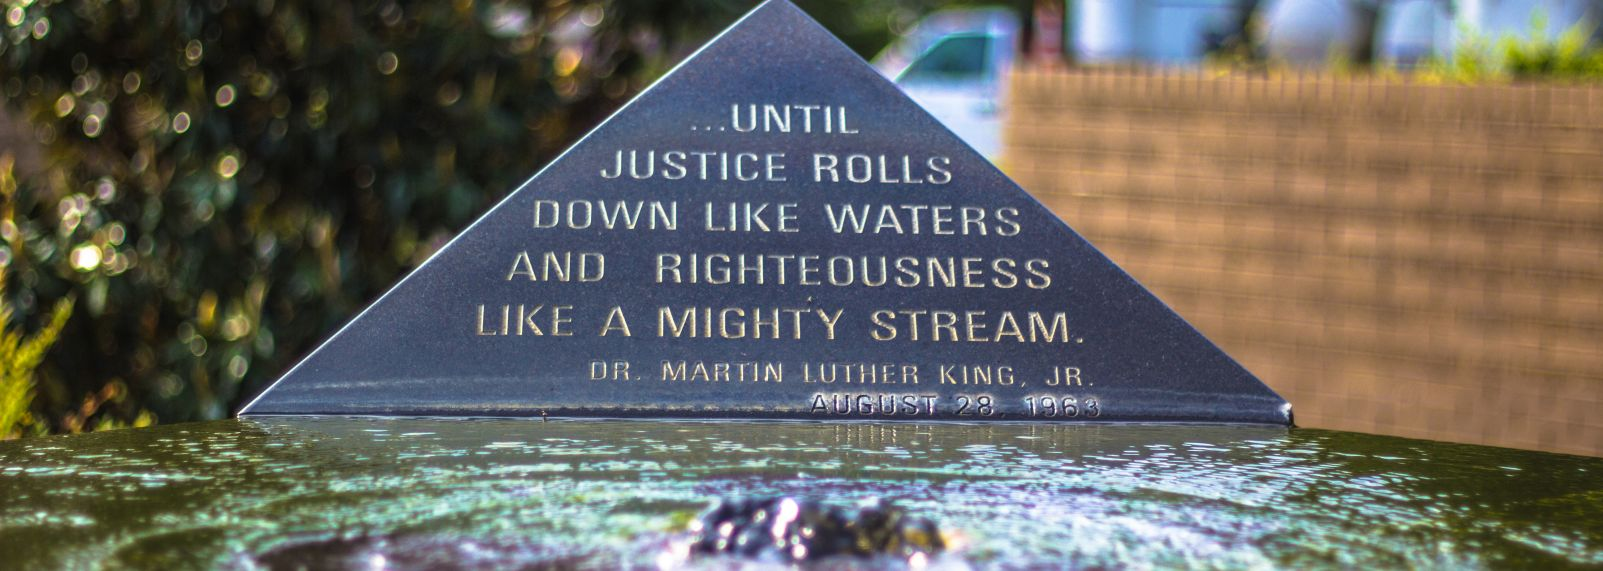 Martin Luther King Memorial Gardens